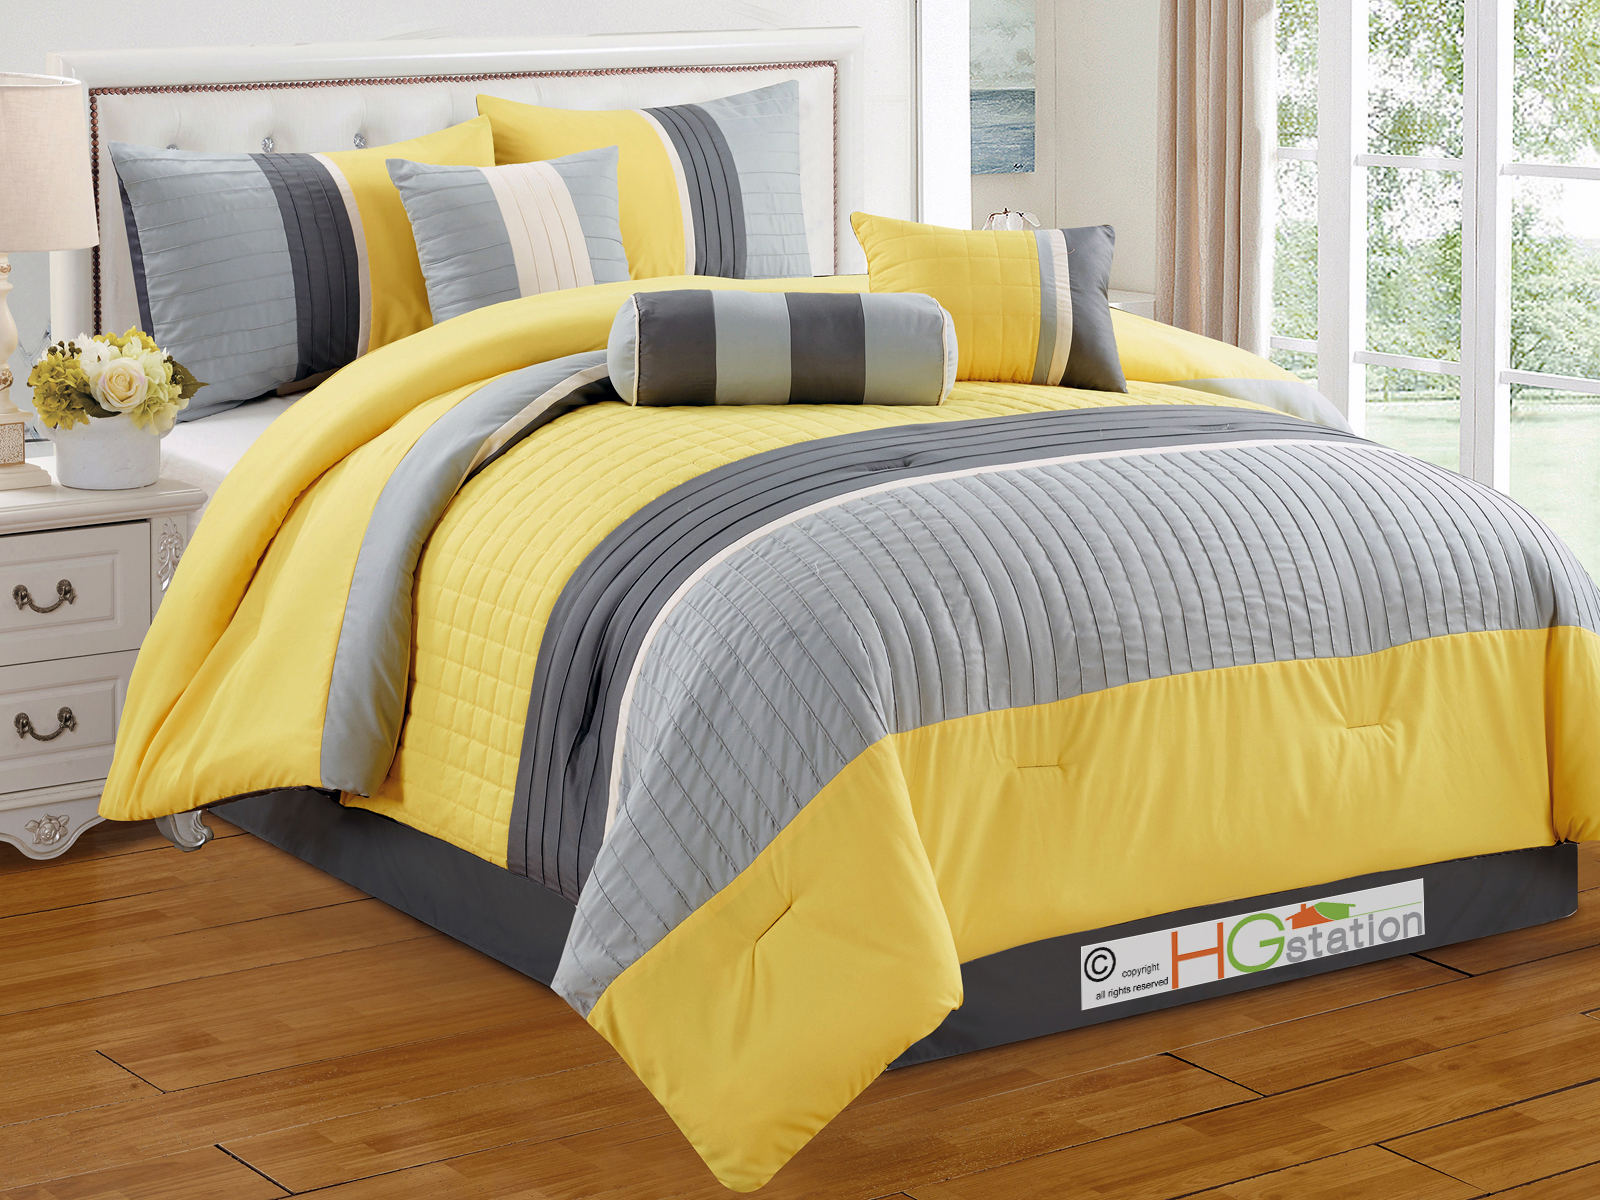 7-Pc Quilted Square Pleated Striped Comforter Set King